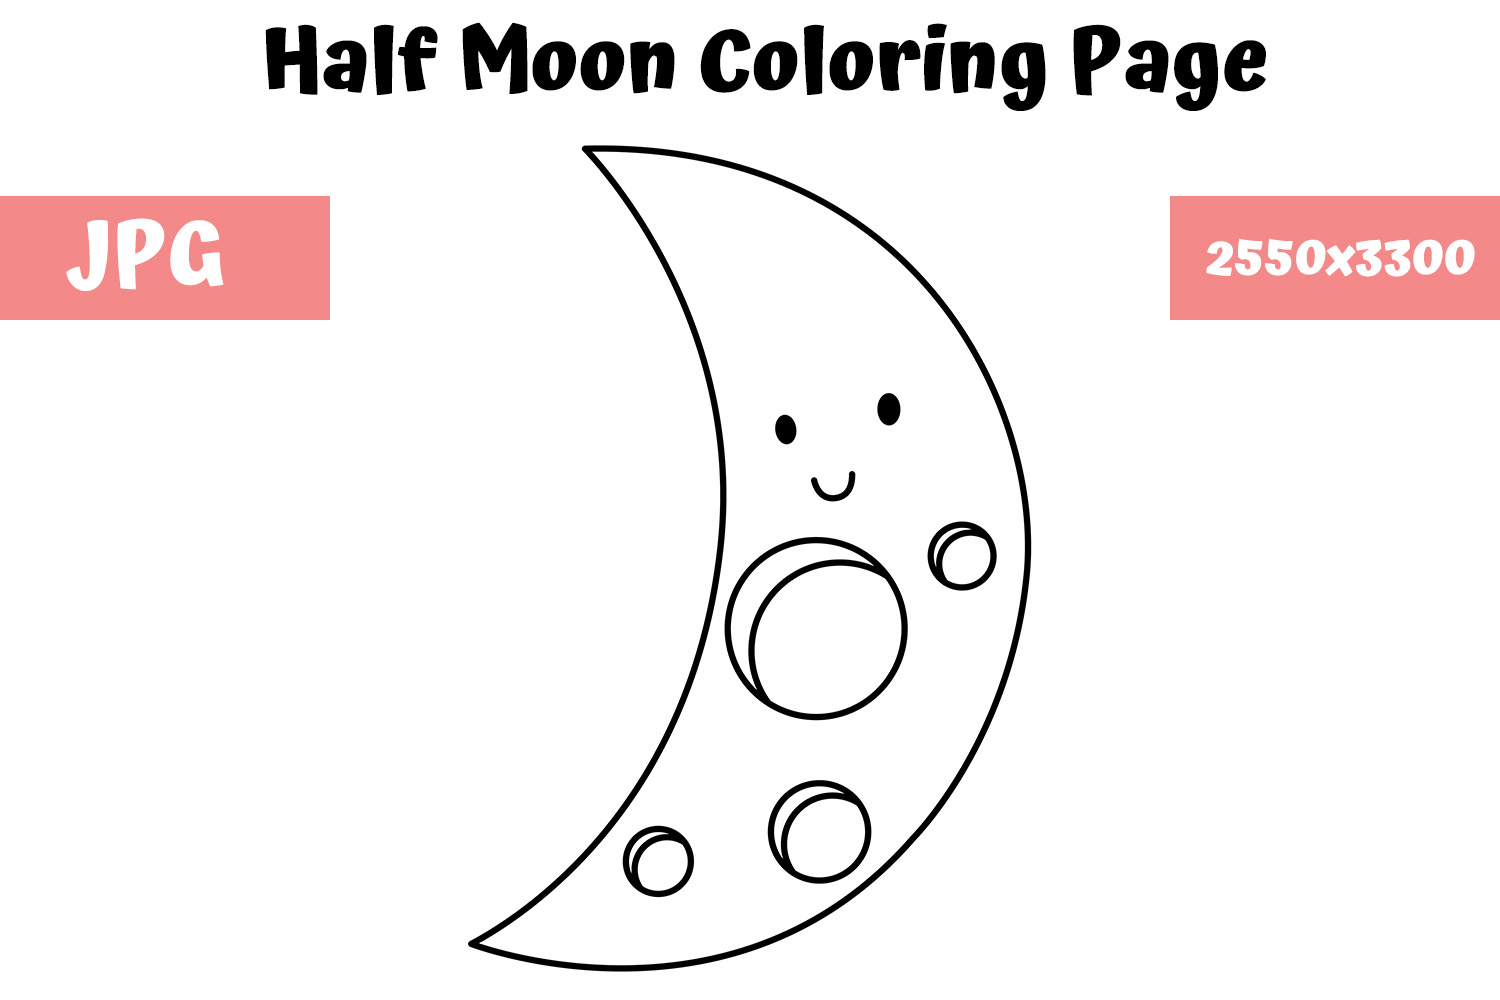 Moon Coloring Page For Kids Graphic By Mybeautifulfiles Creative Fabrica